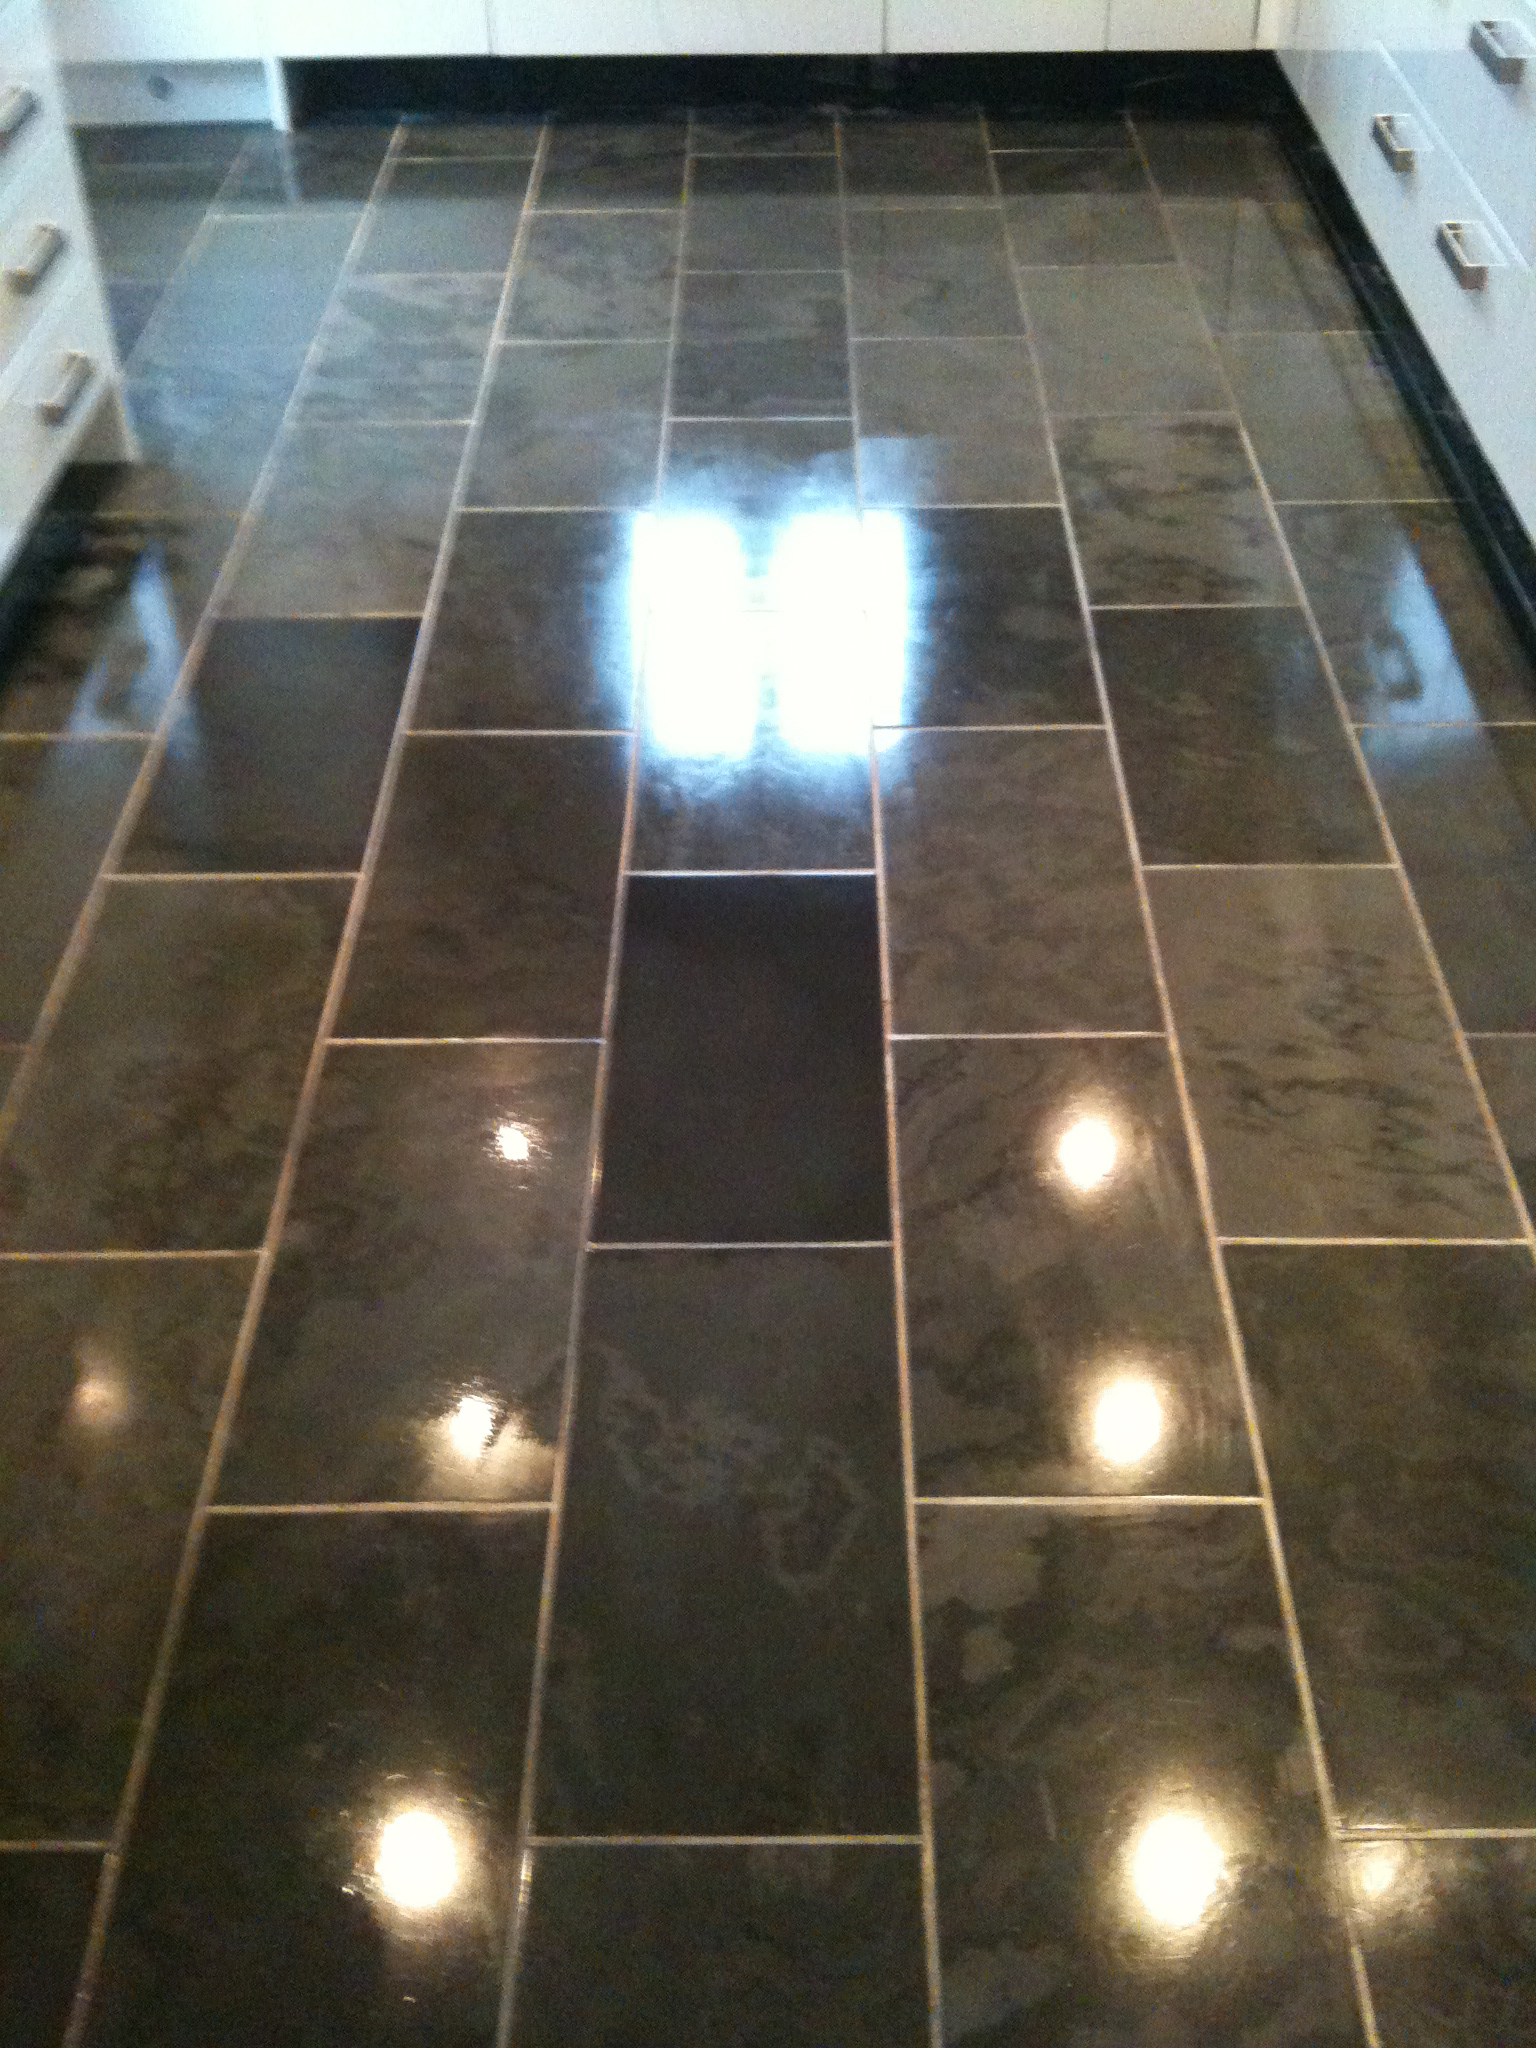 Quarry, Sandstone & Slate Tiles Commercial Floor Cleaning